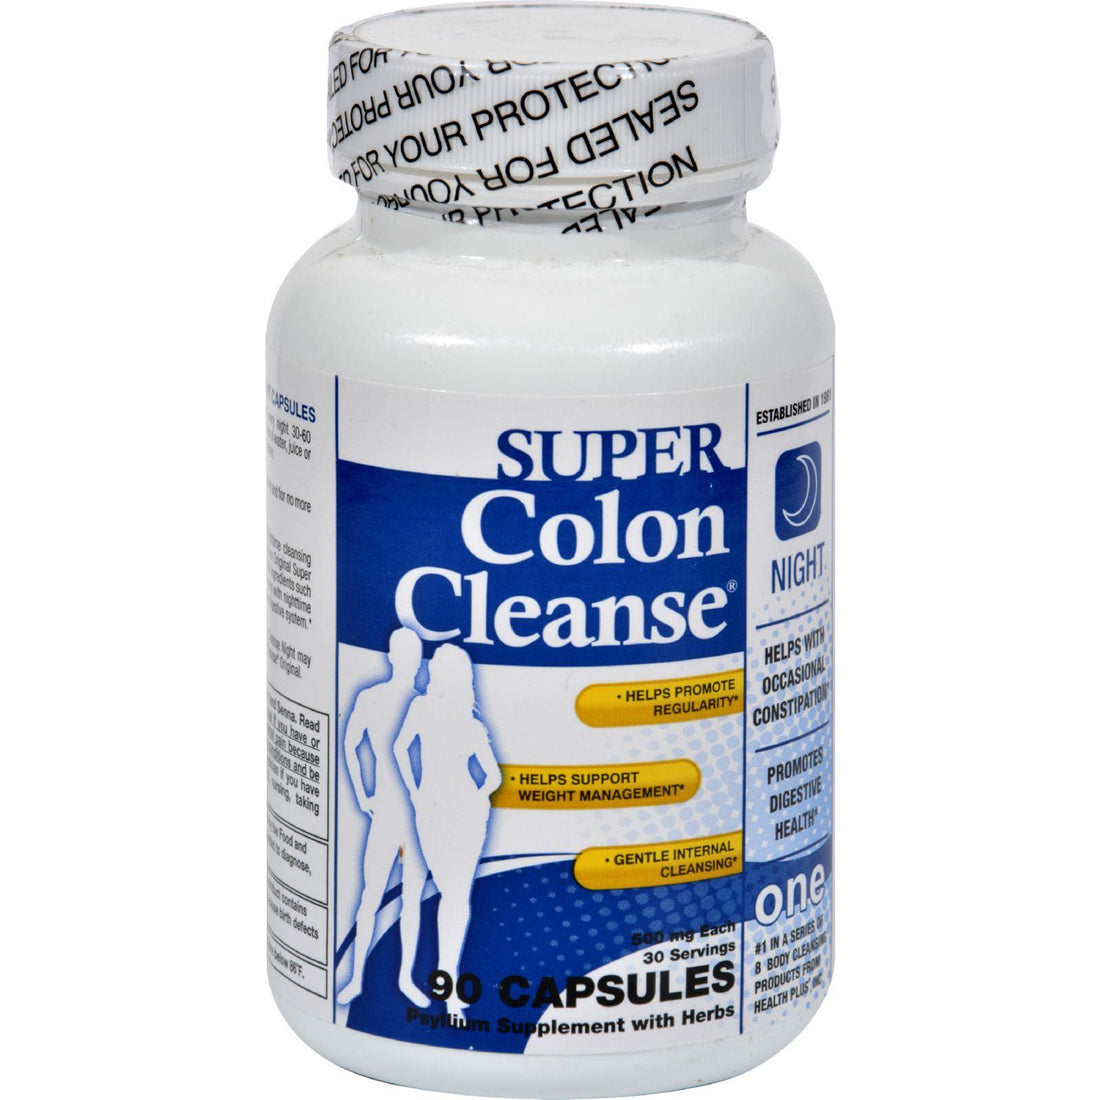 Mother Mantis: Health Plus Super Colon Cleanse Night Formula - 90 Capsules Health Plus